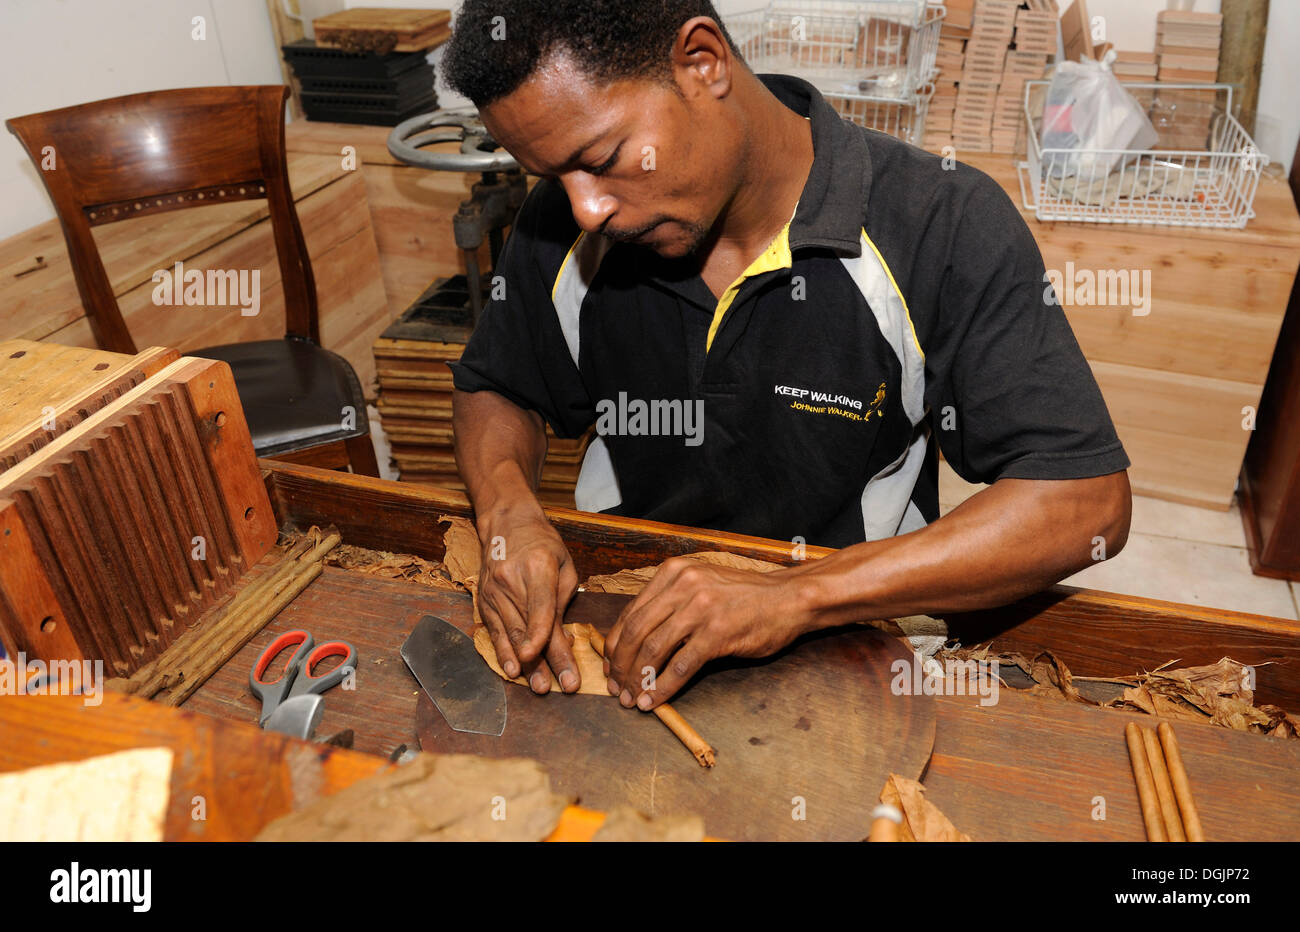 Man rolling a cigar, attaching the wrapper, cigar factory in Punta Cana, Dominican Republic, Caribbean - Stock Image